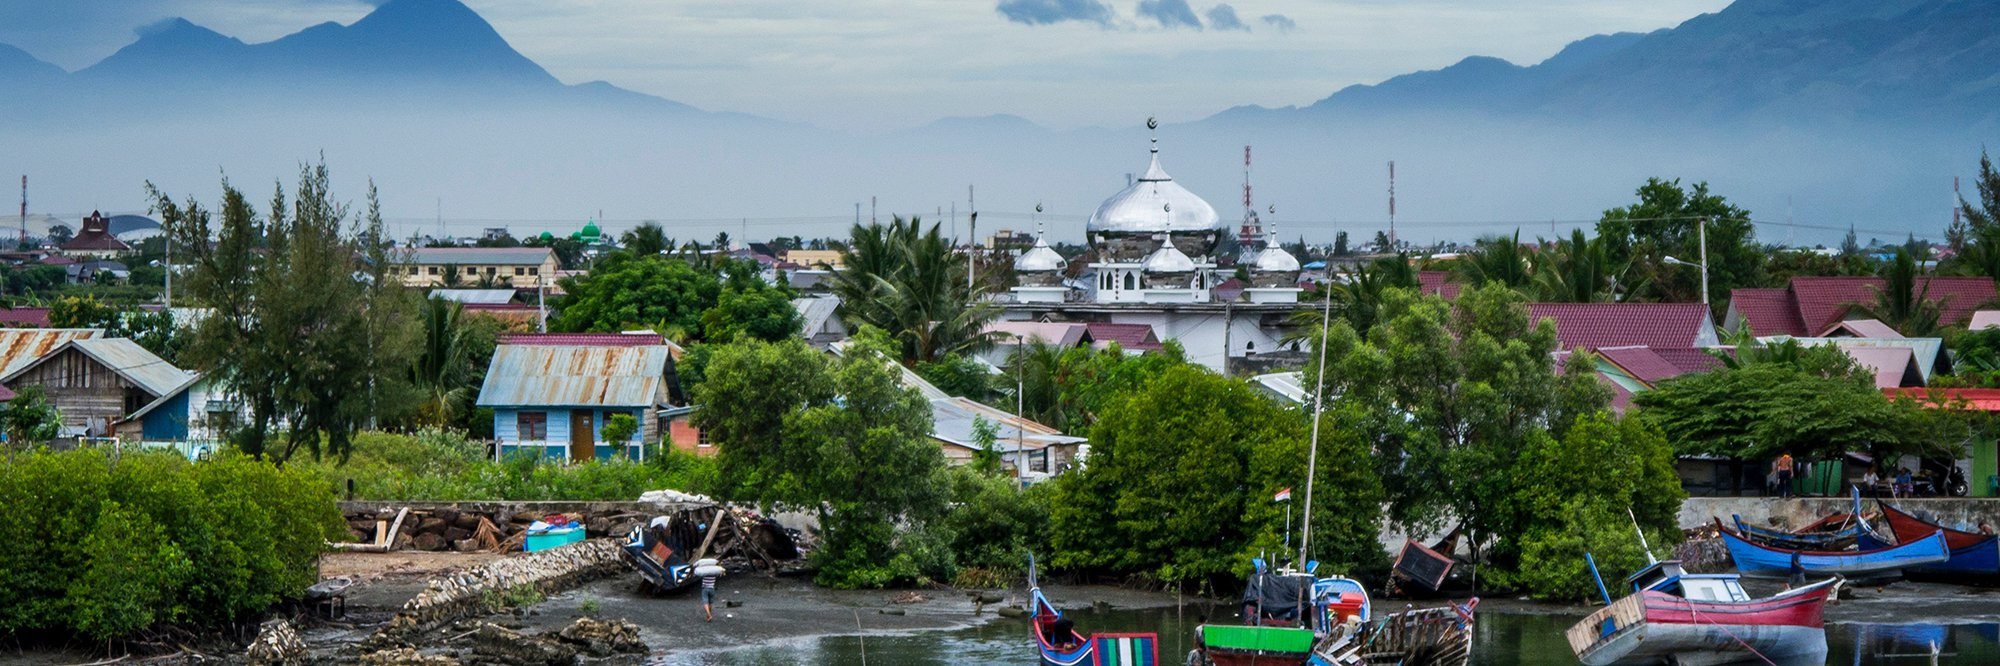 Banda Aceh, Indonesia water, boarts, temples, mountains